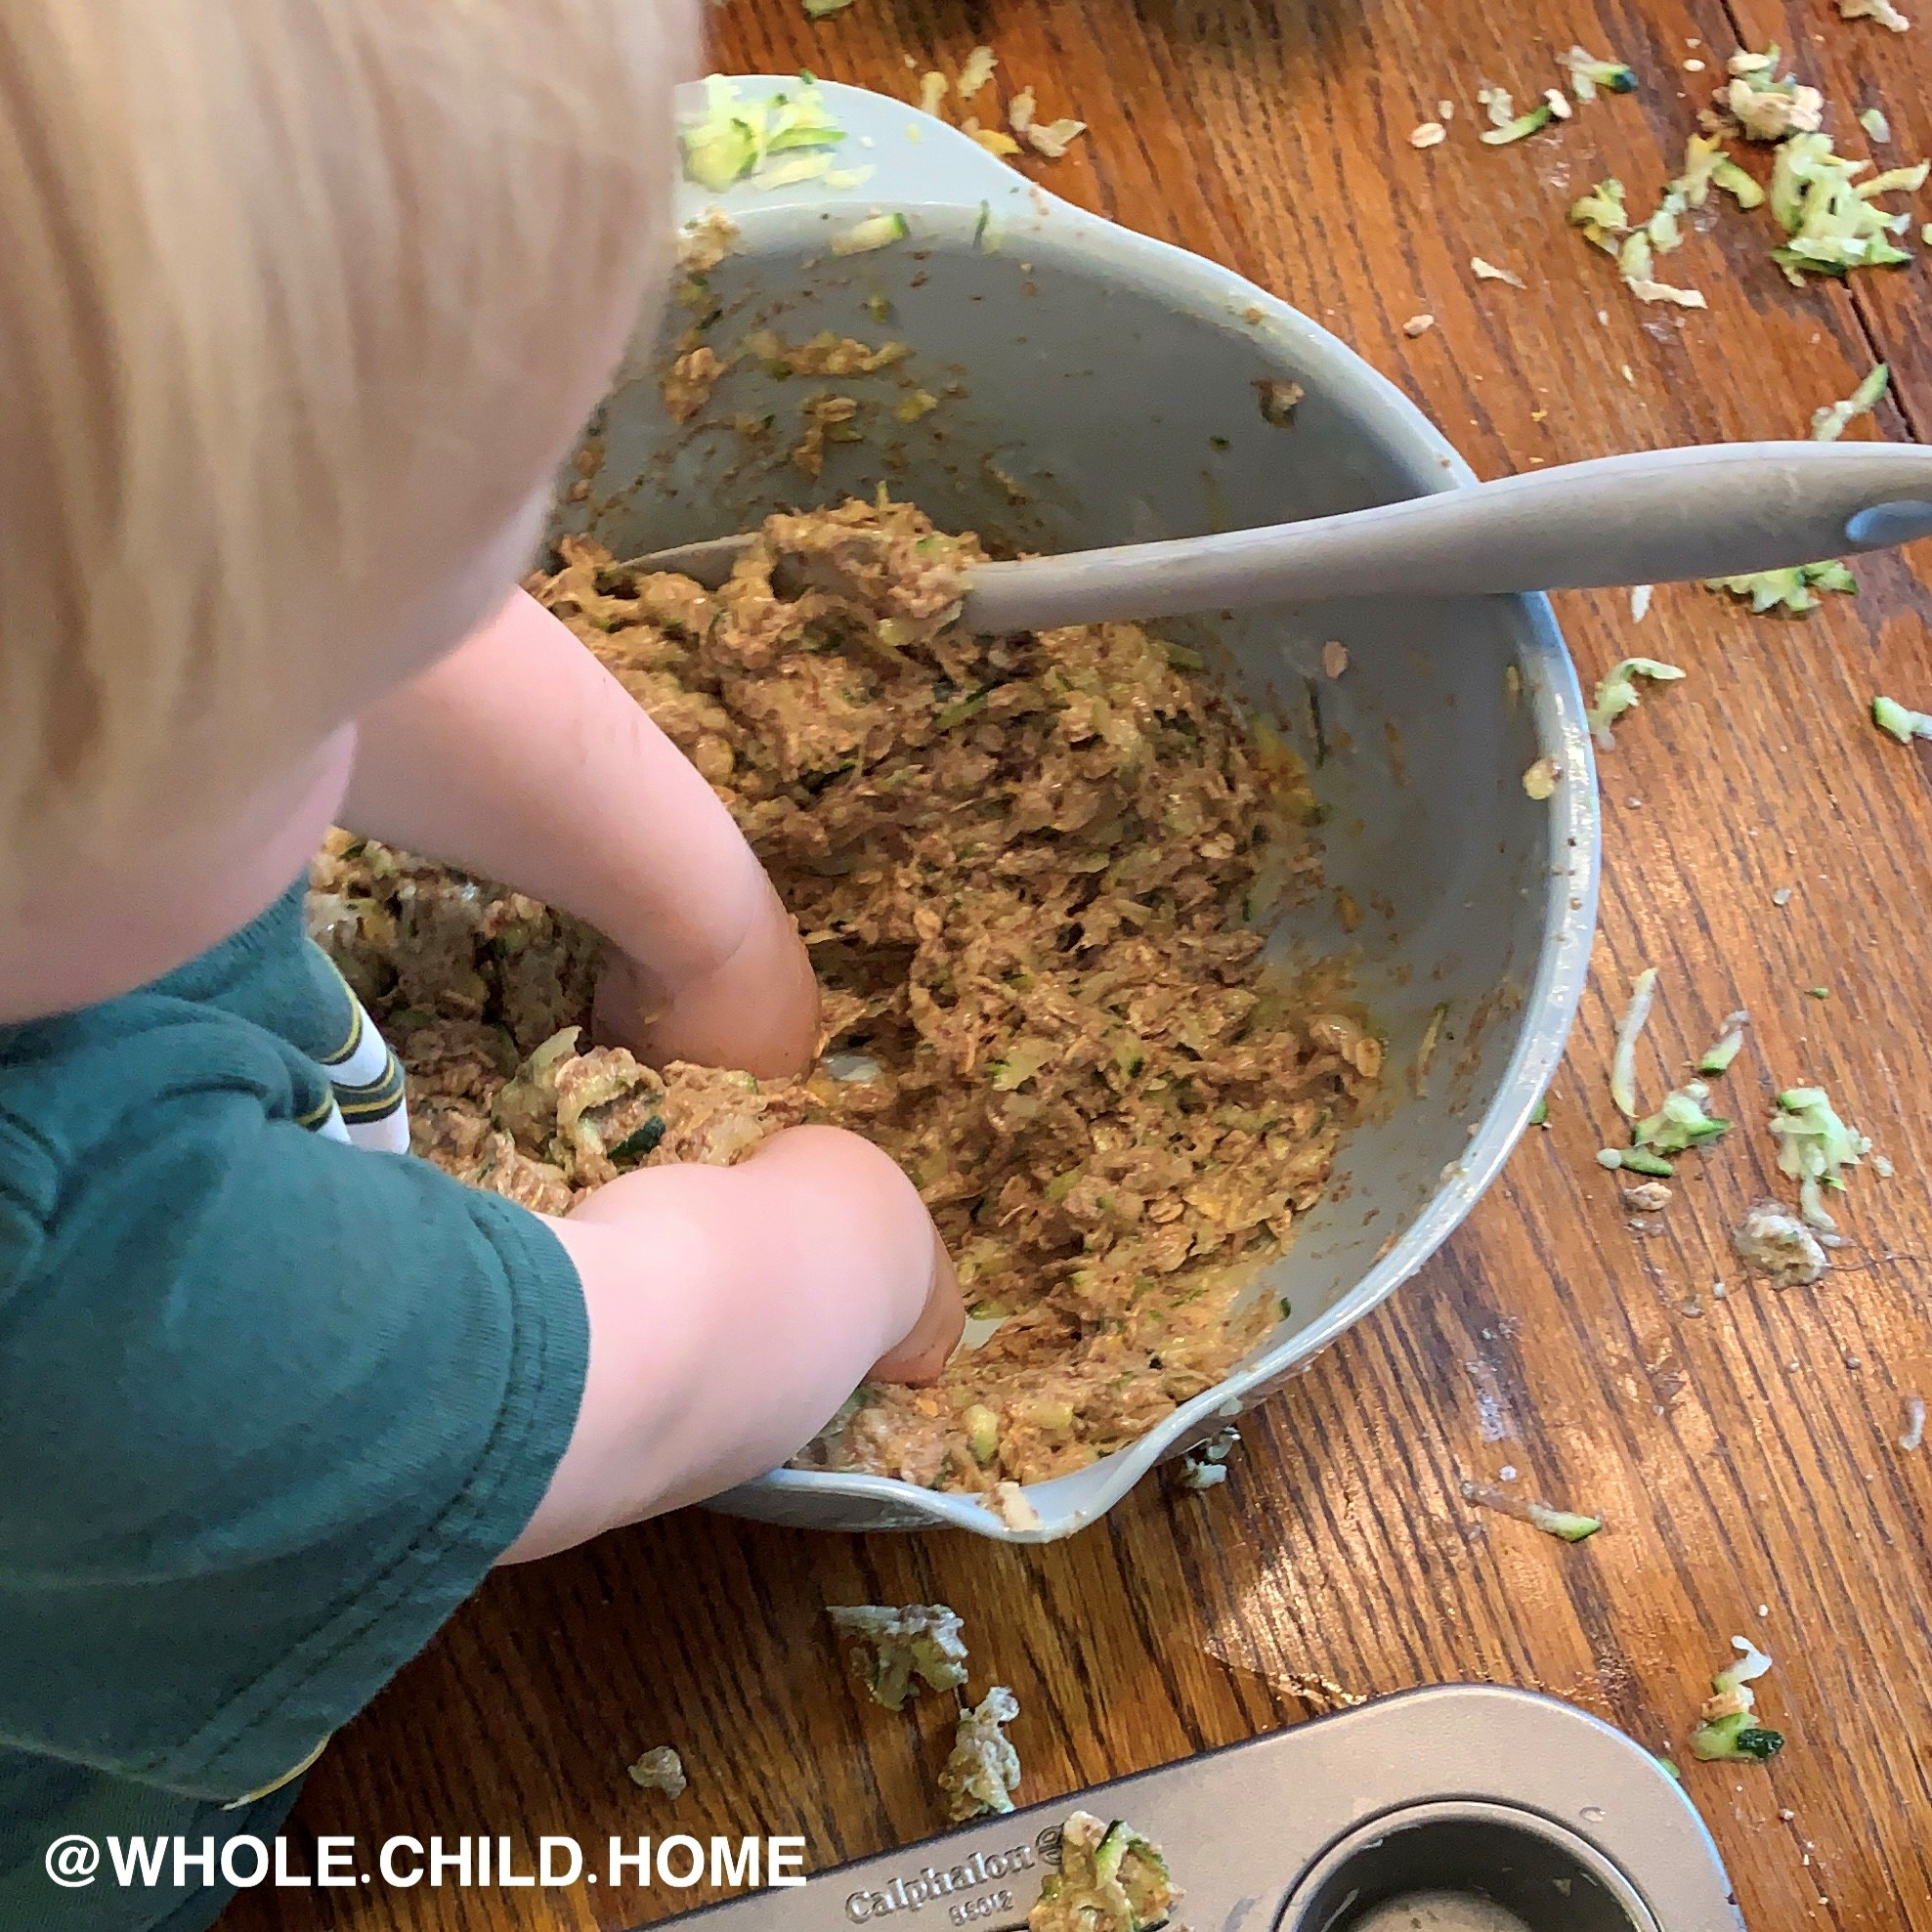 Montessori at Home: Sensory Work, Practical Life, and Restoring Order